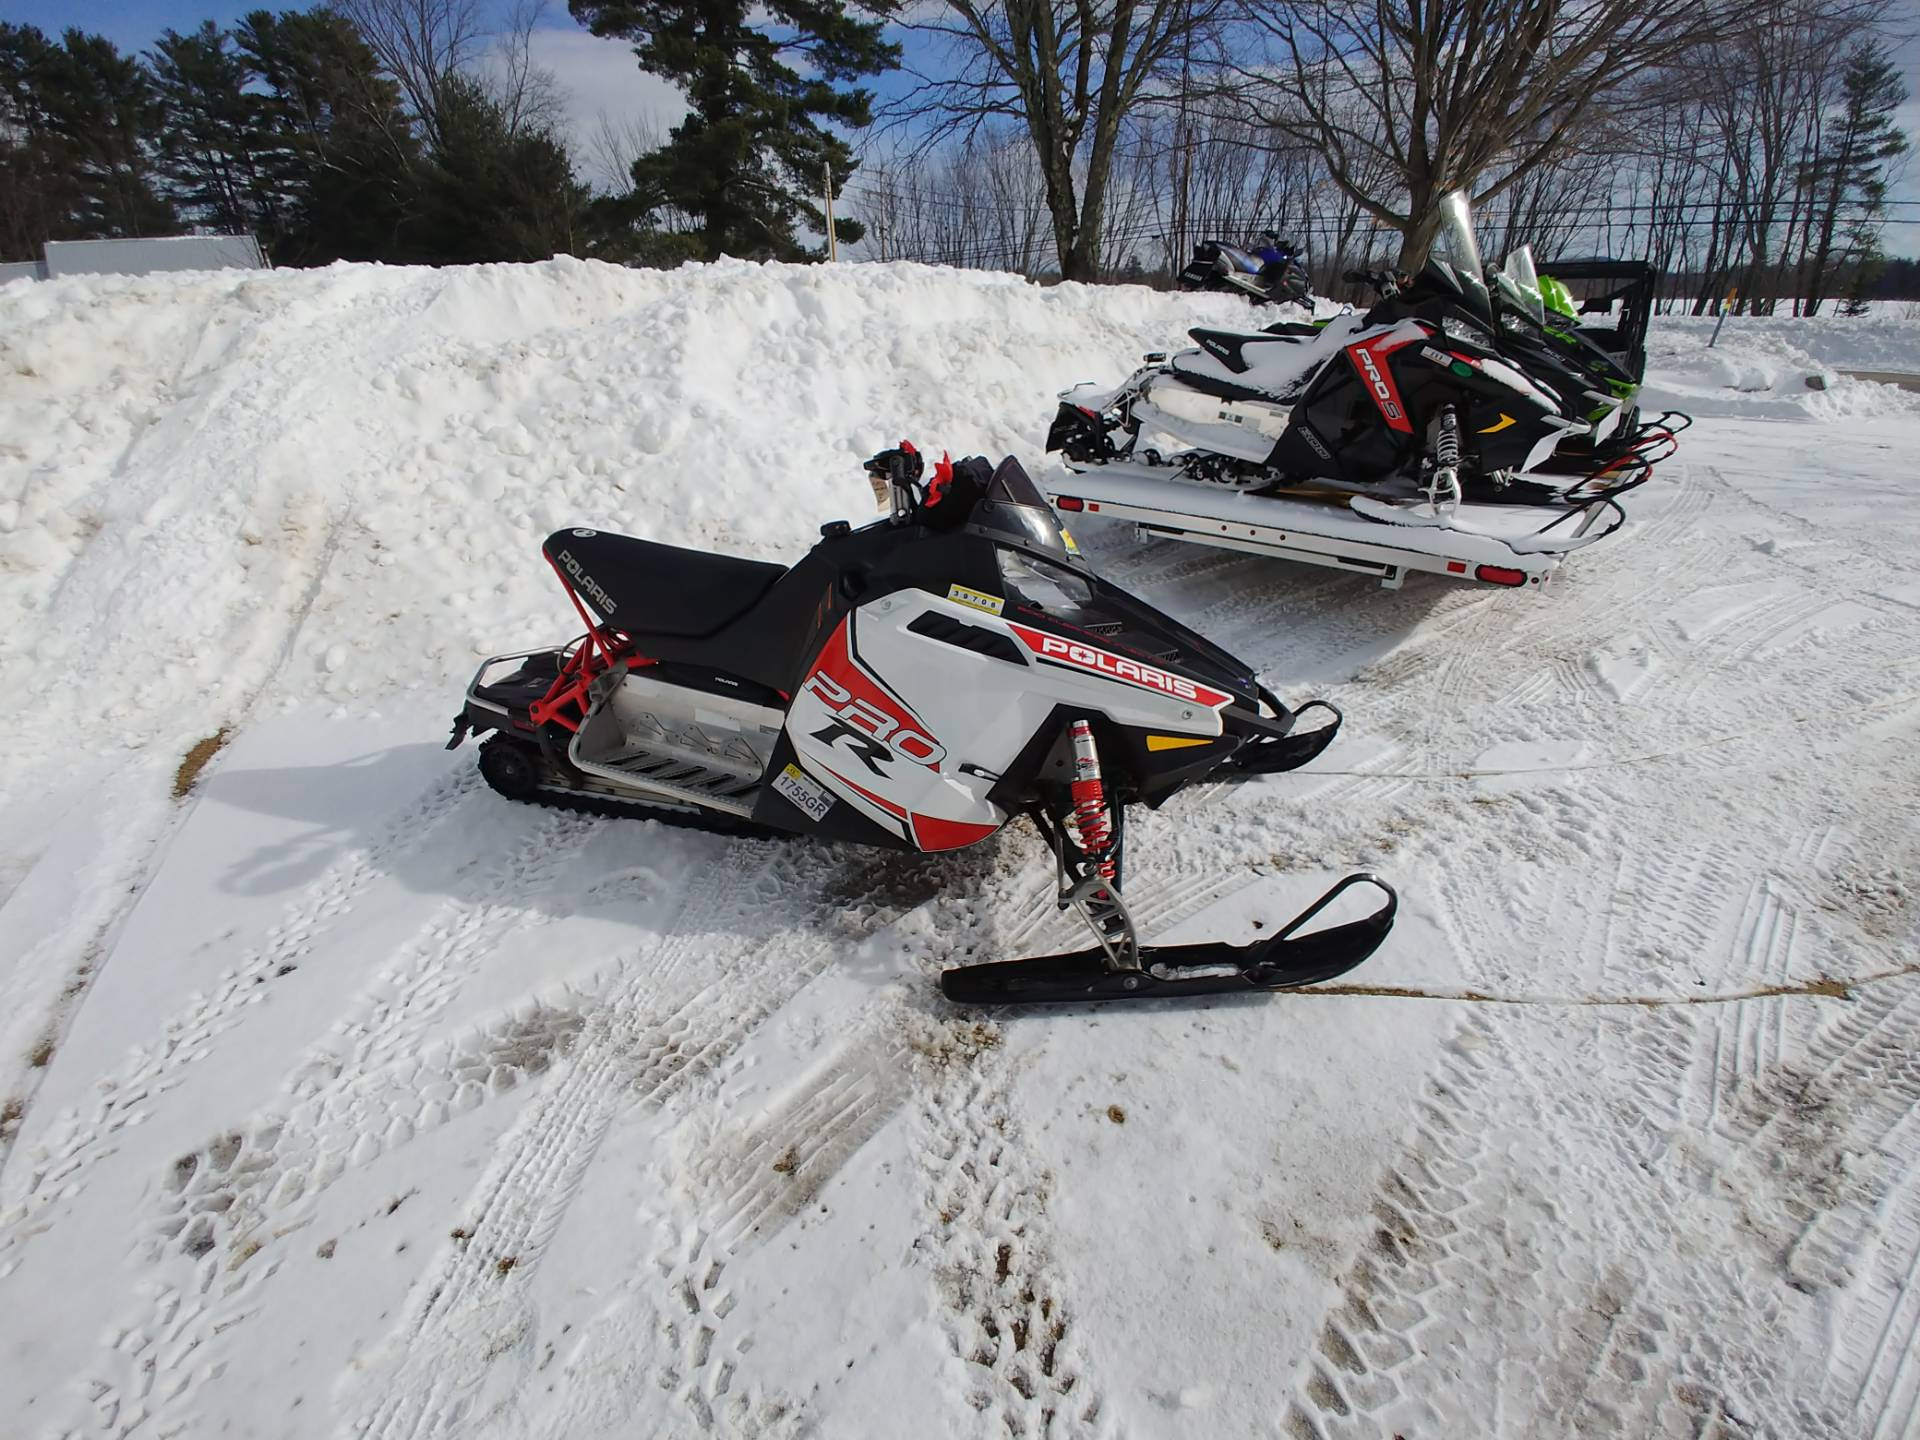 2010 Polaris 600 Rush in Center Conway, New Hampshire - Photo 1